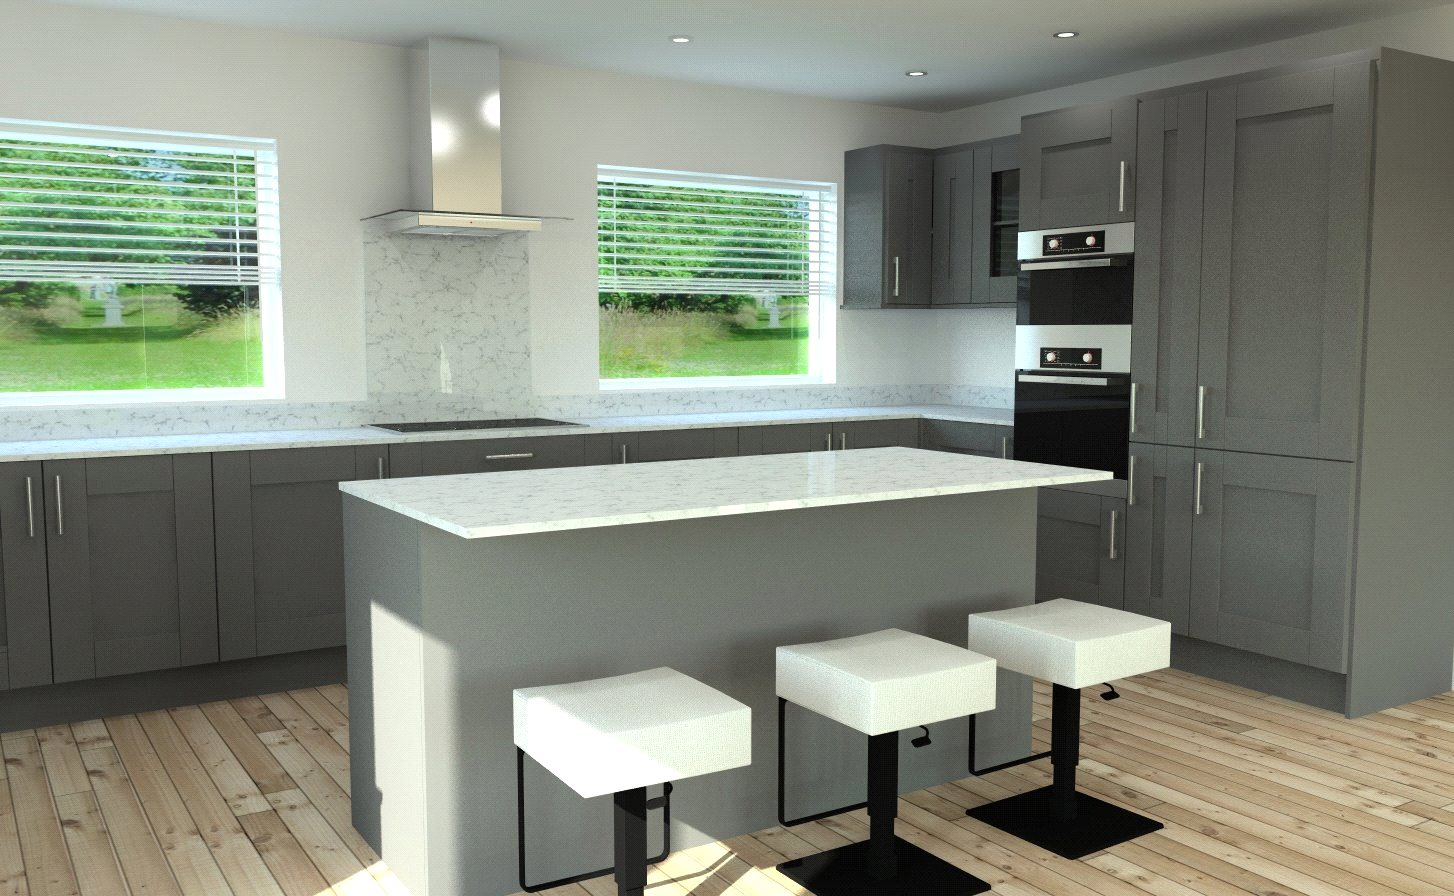 4 bed house for sale in Starlings View, Arundel Road, Angmering 5